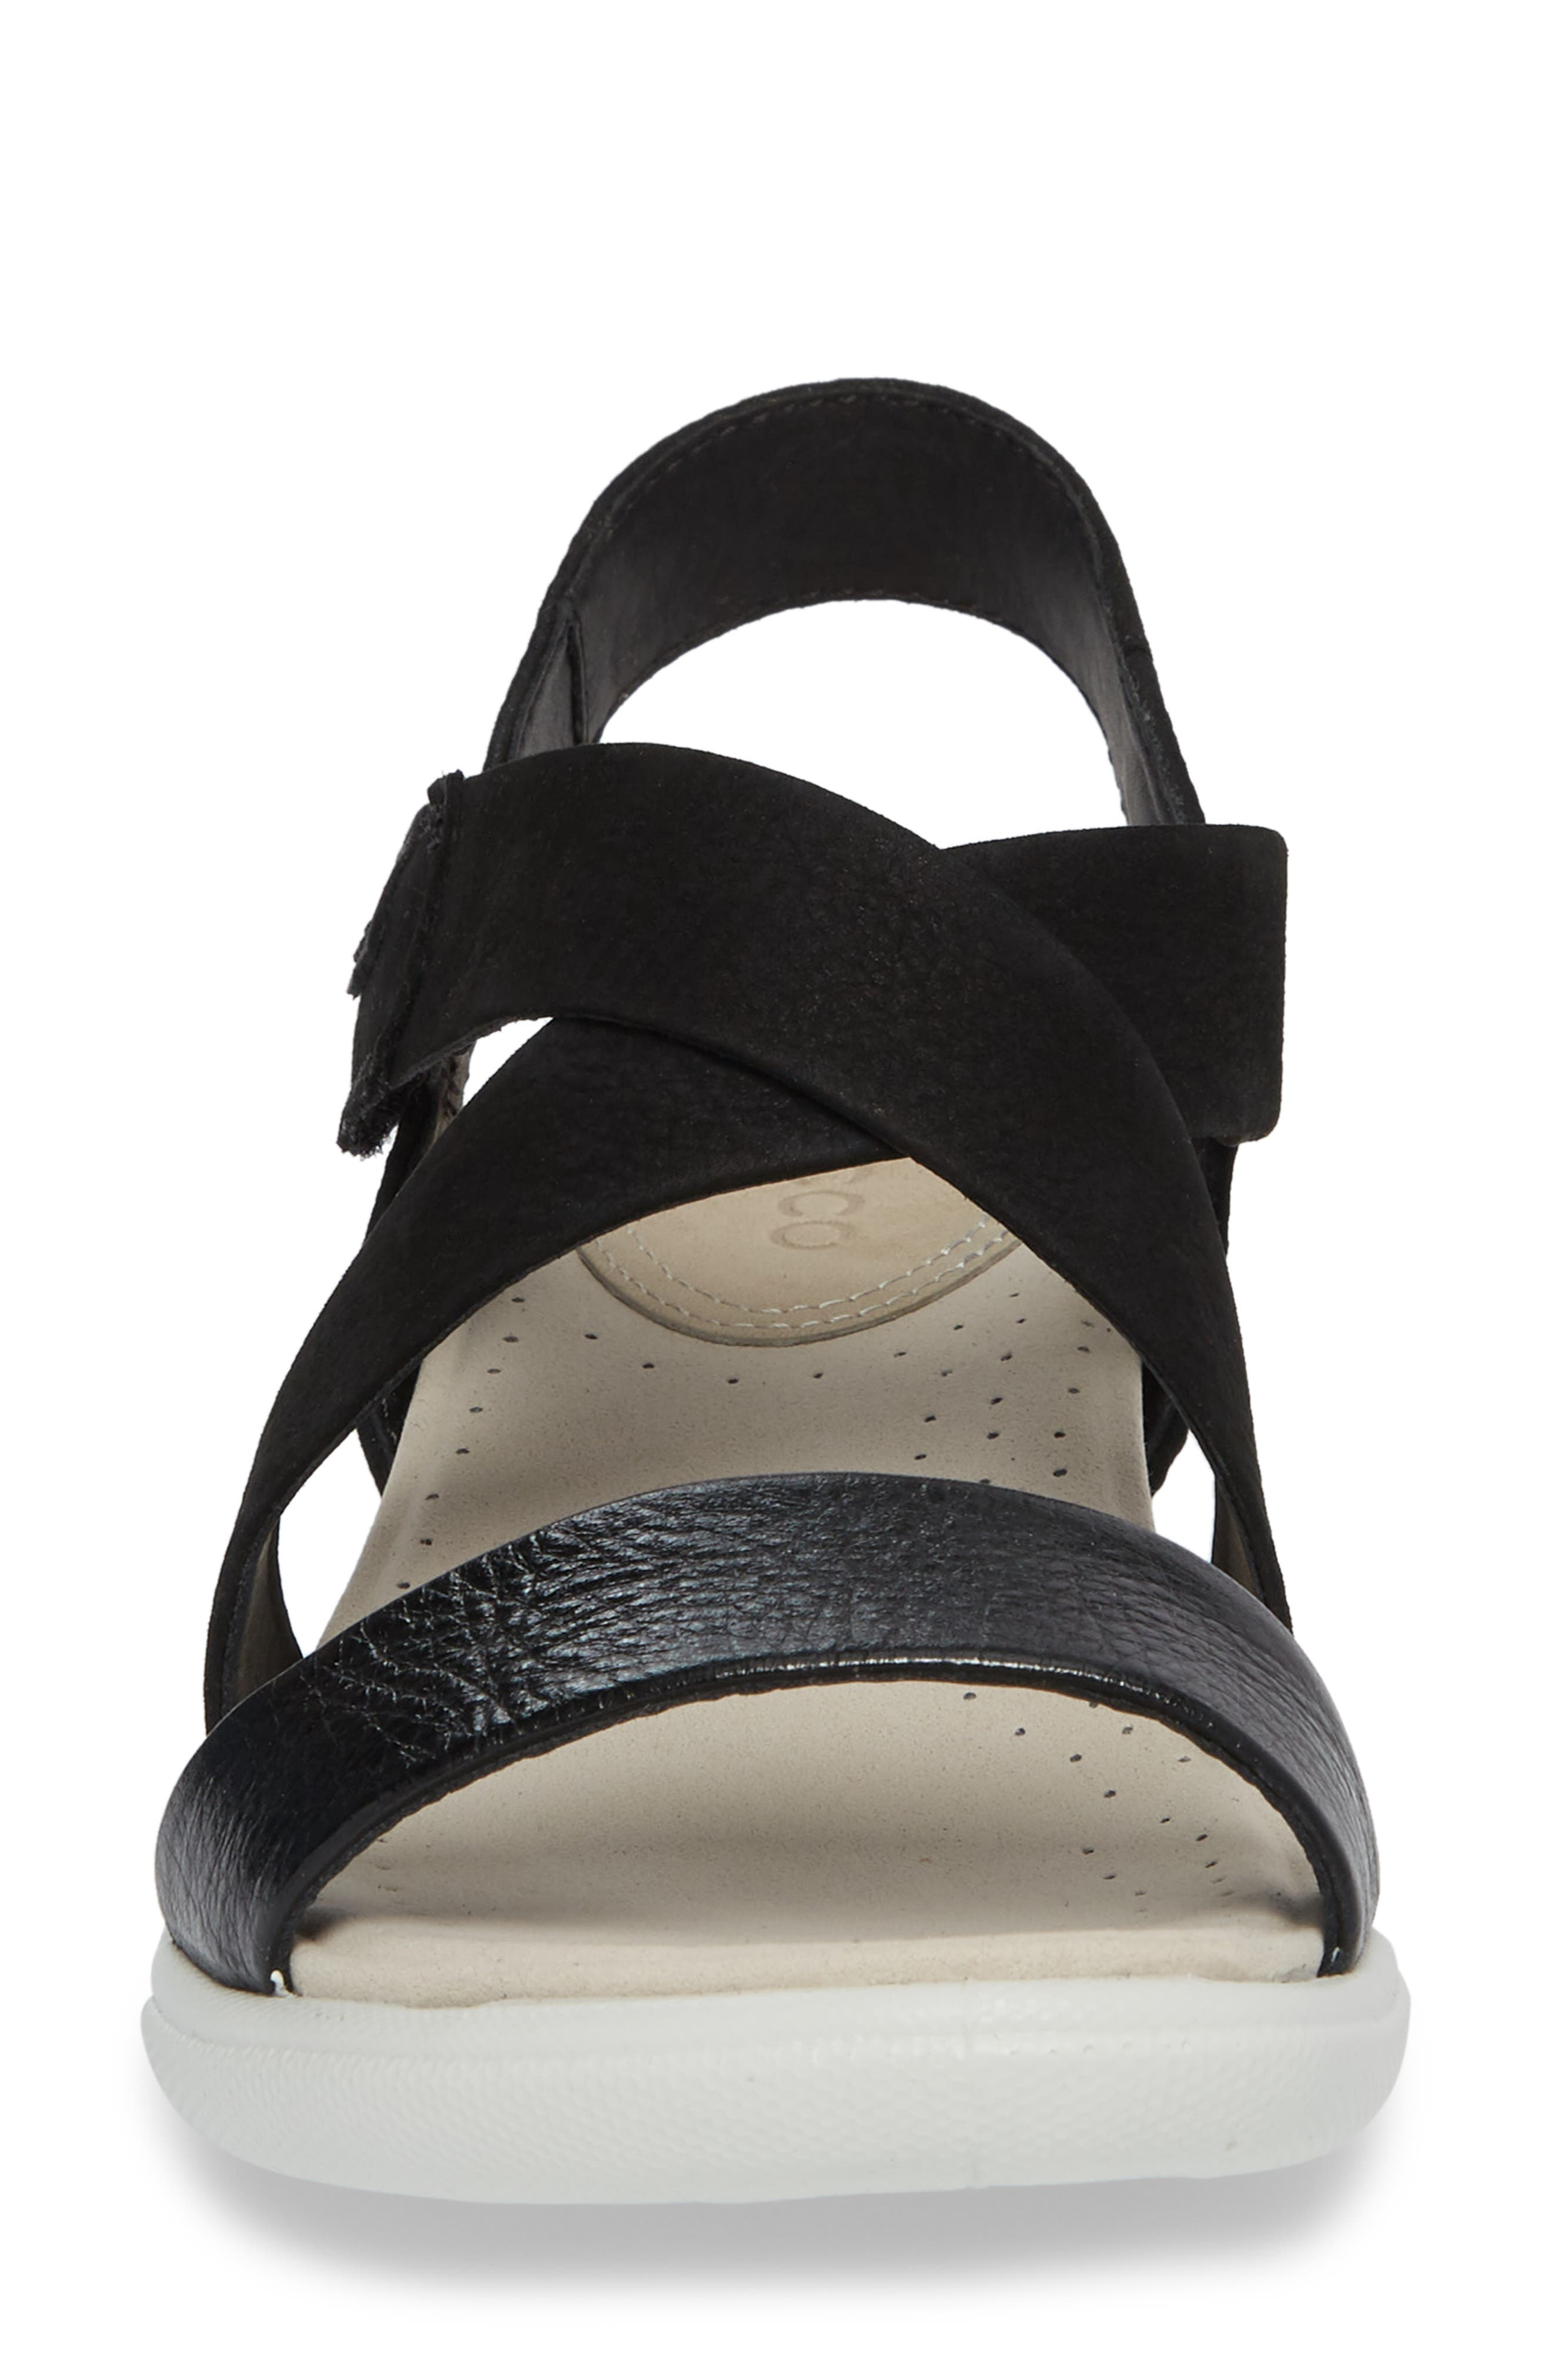 Damara Cross-Strap Sandal,                             Alternate thumbnail 22, color,